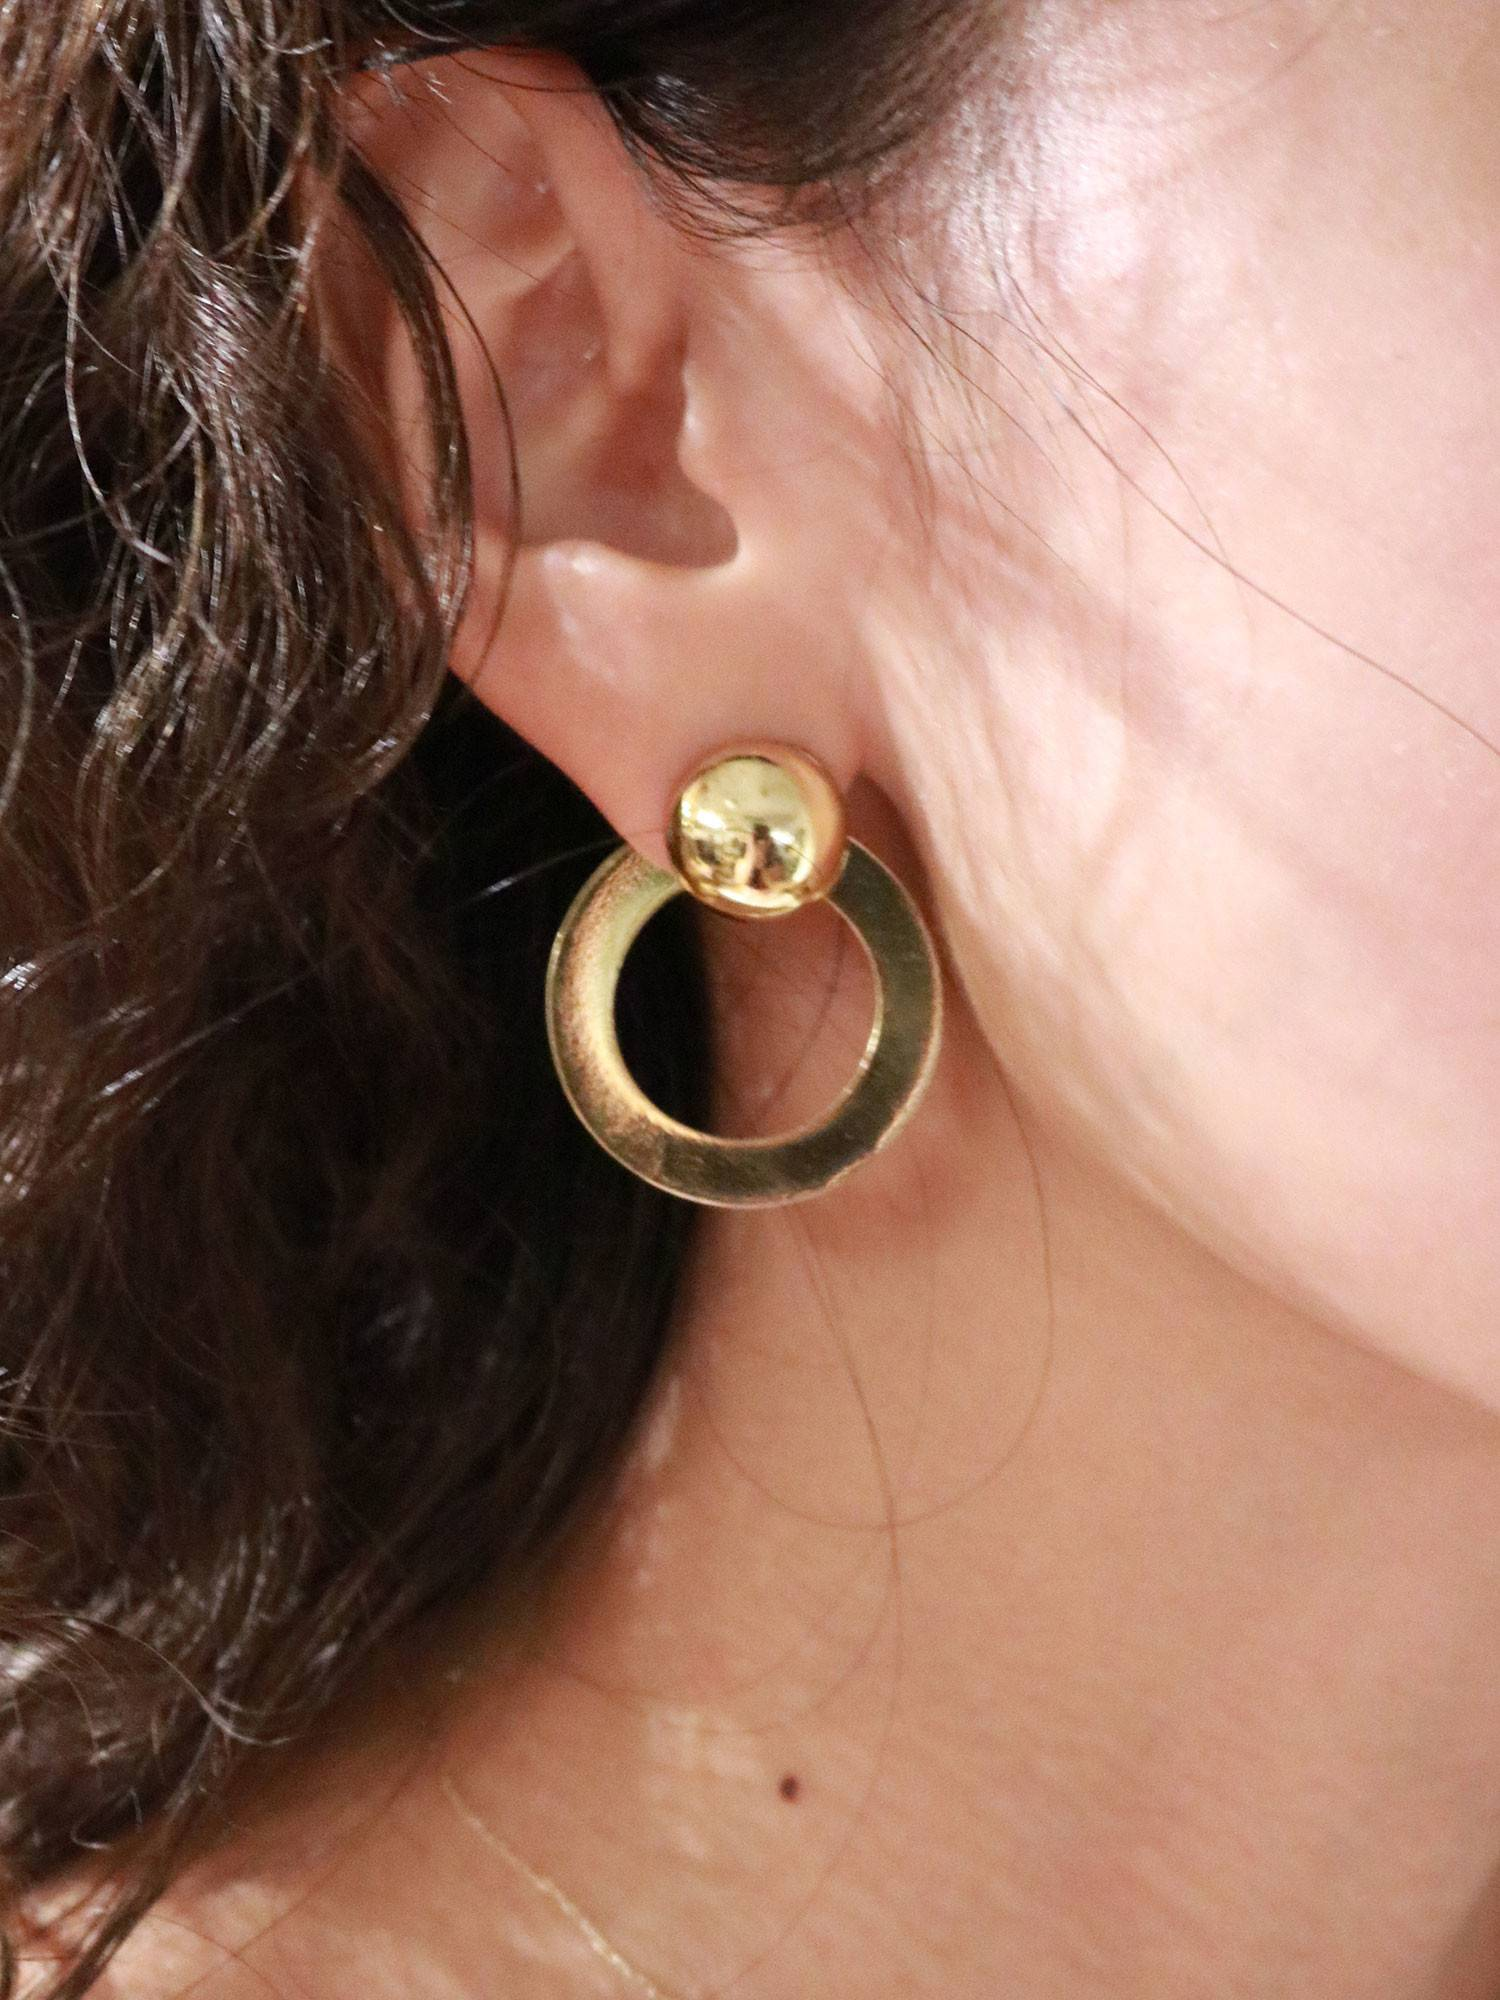 Ring motif earrings